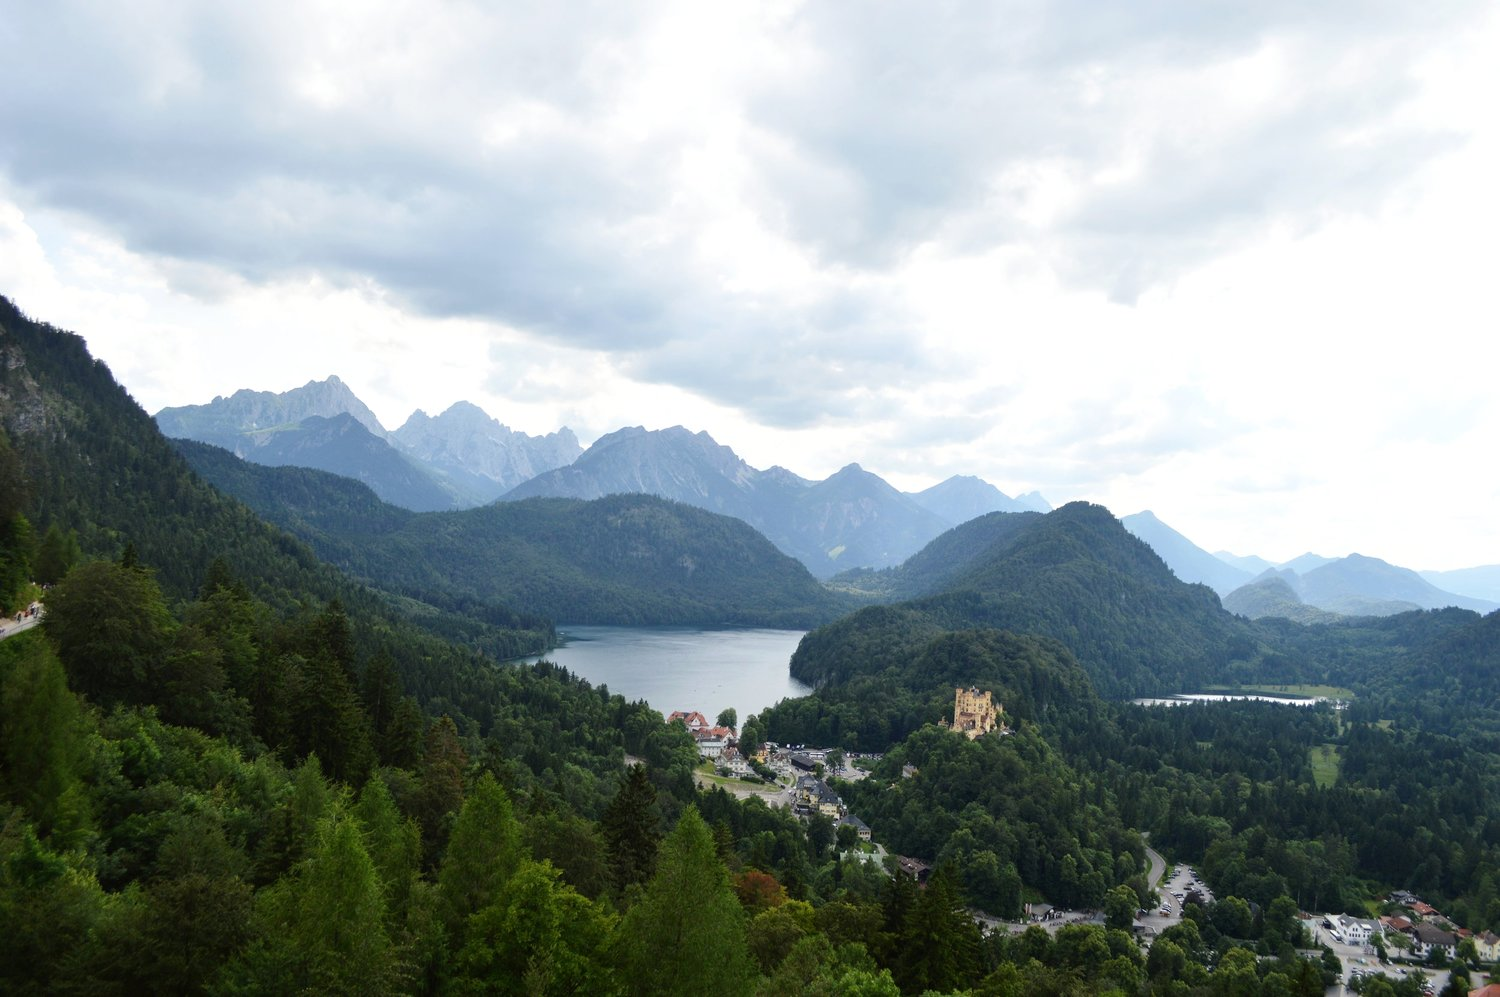 View from a balcony at Neuschwanstein Castle, Germany